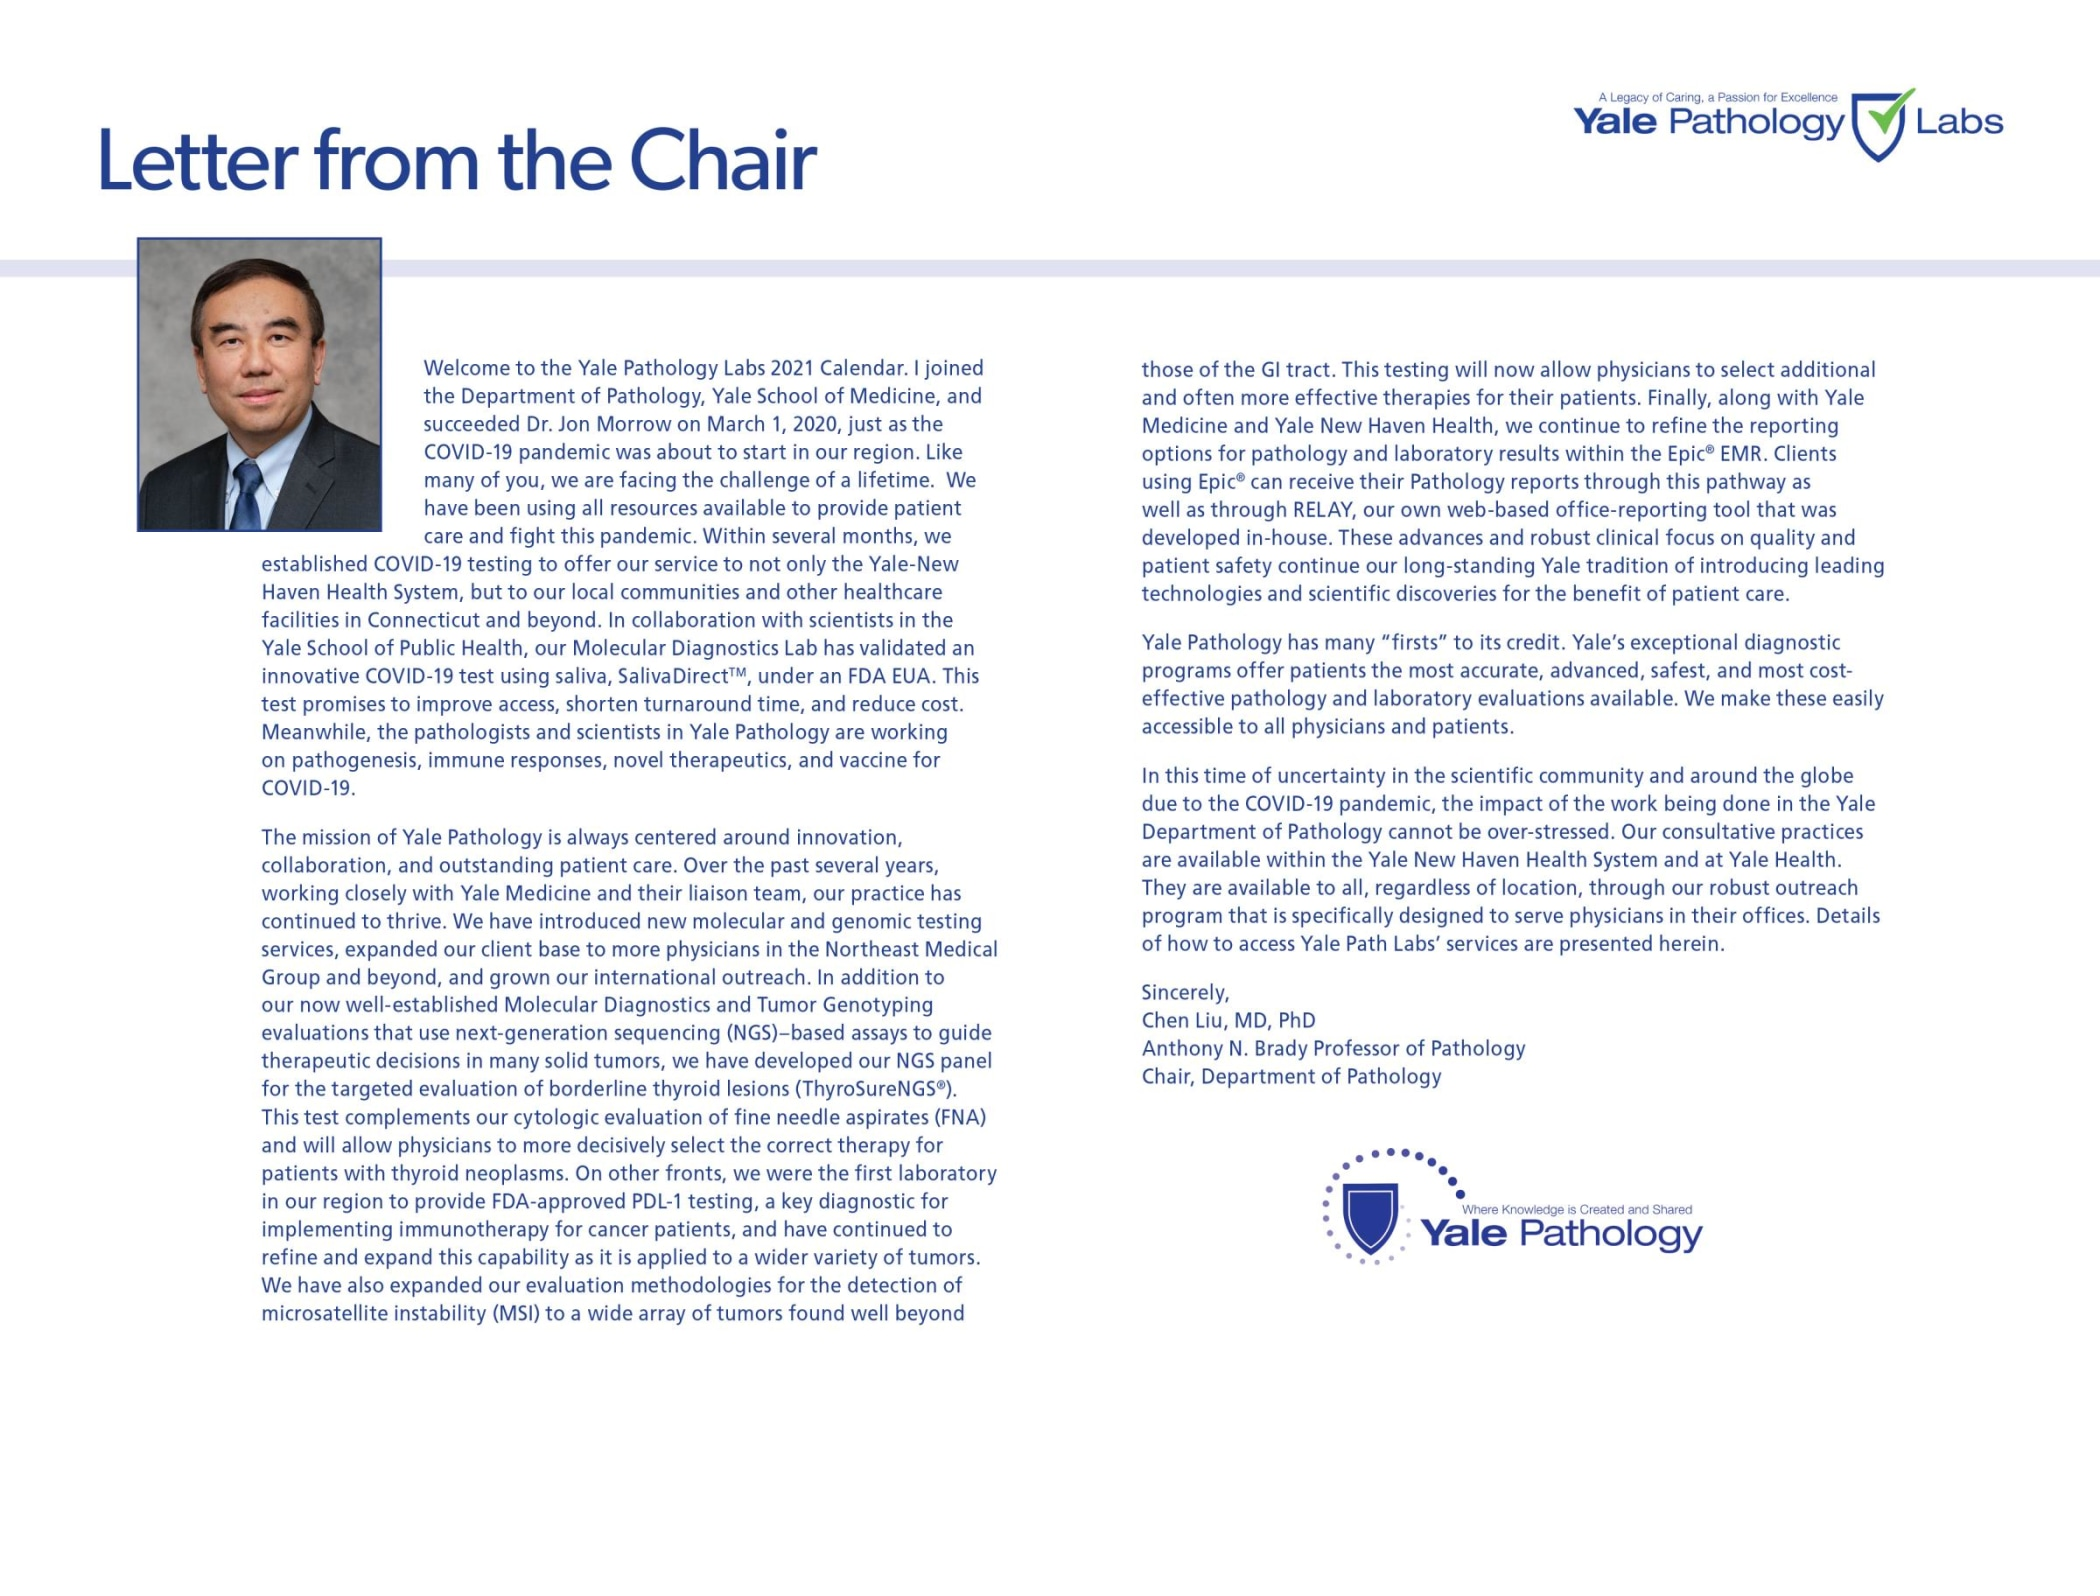 Yale Pathology Labs Calendar 2021 - Letter from the Chair